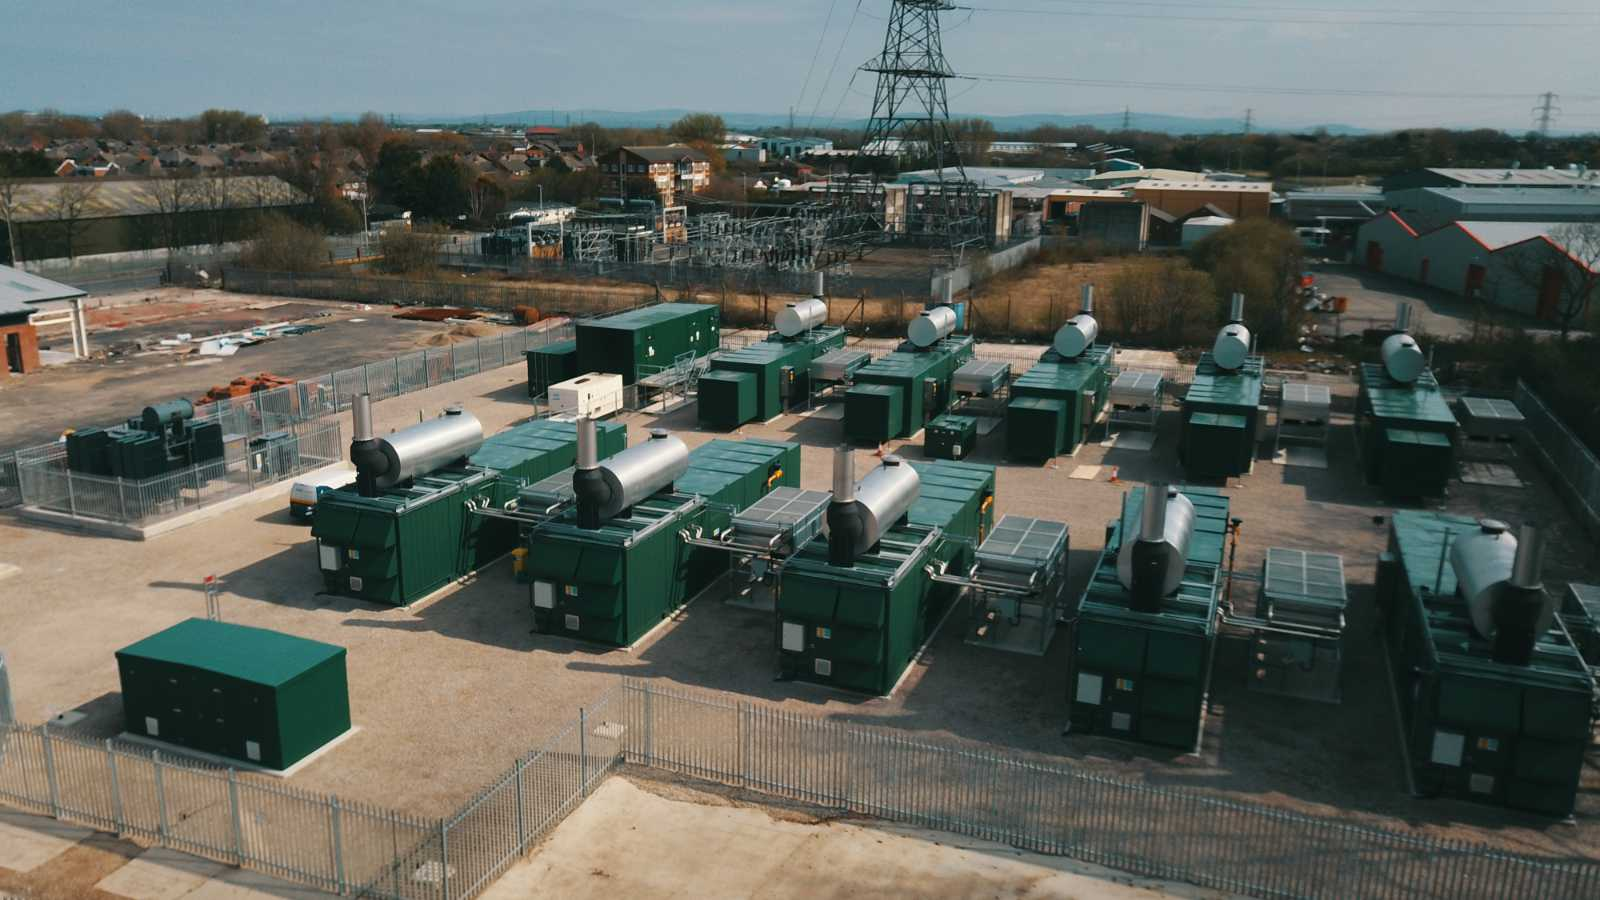 Containers with MWM gas engines on the premises of Bispham Flexible Generation